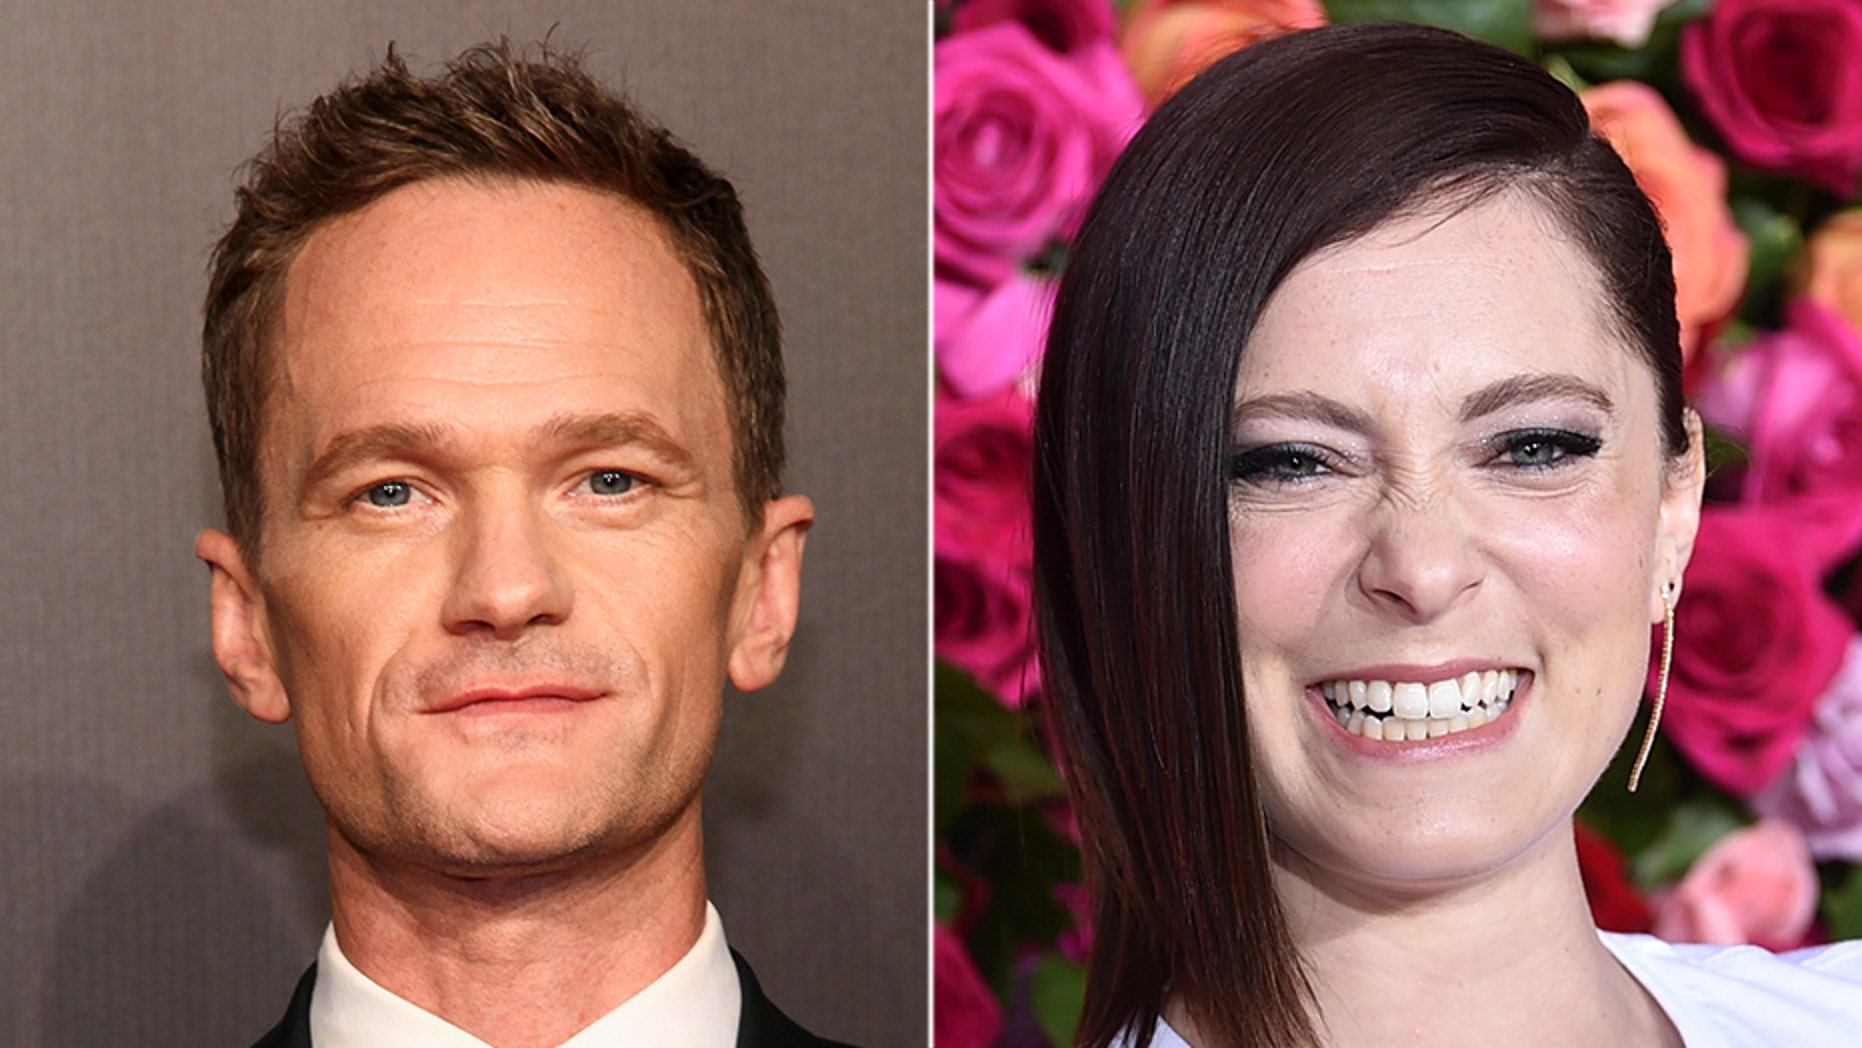 Rachel Bloom fired back at Neil Patrick Harris, who mocked her and forgot who the actress was.